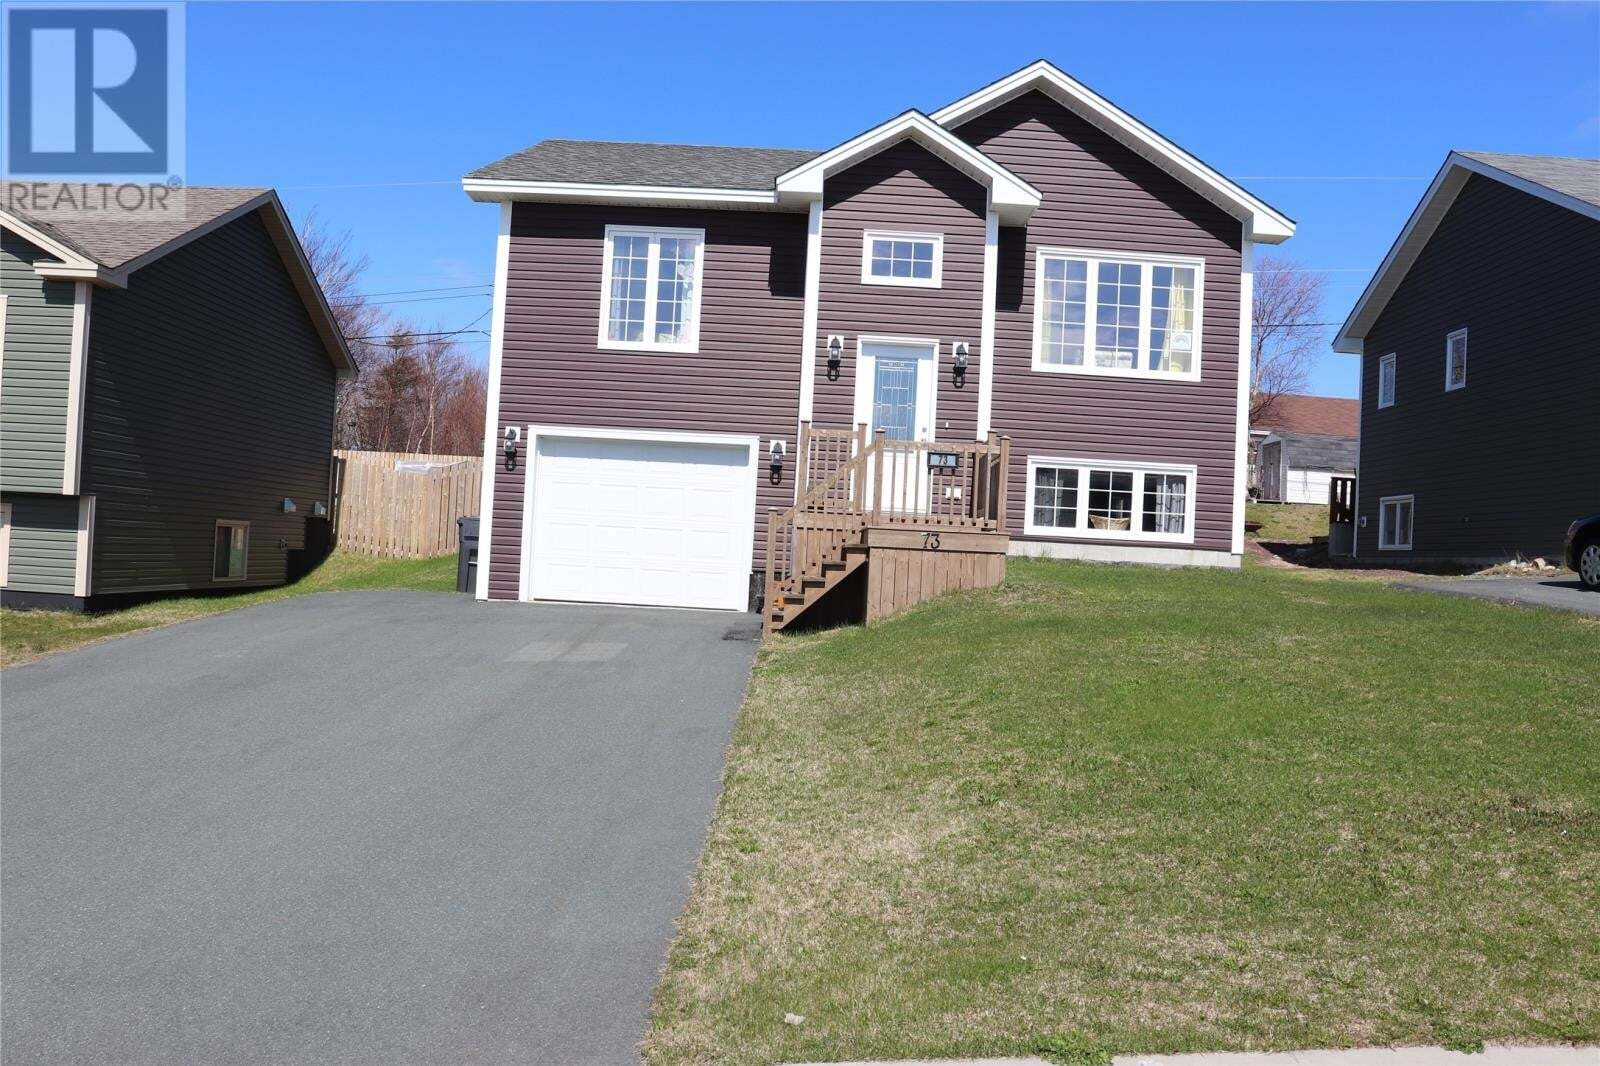 House for sale at 73 Cole Thomas Dr Conception Bay South Newfoundland - MLS: 1213847